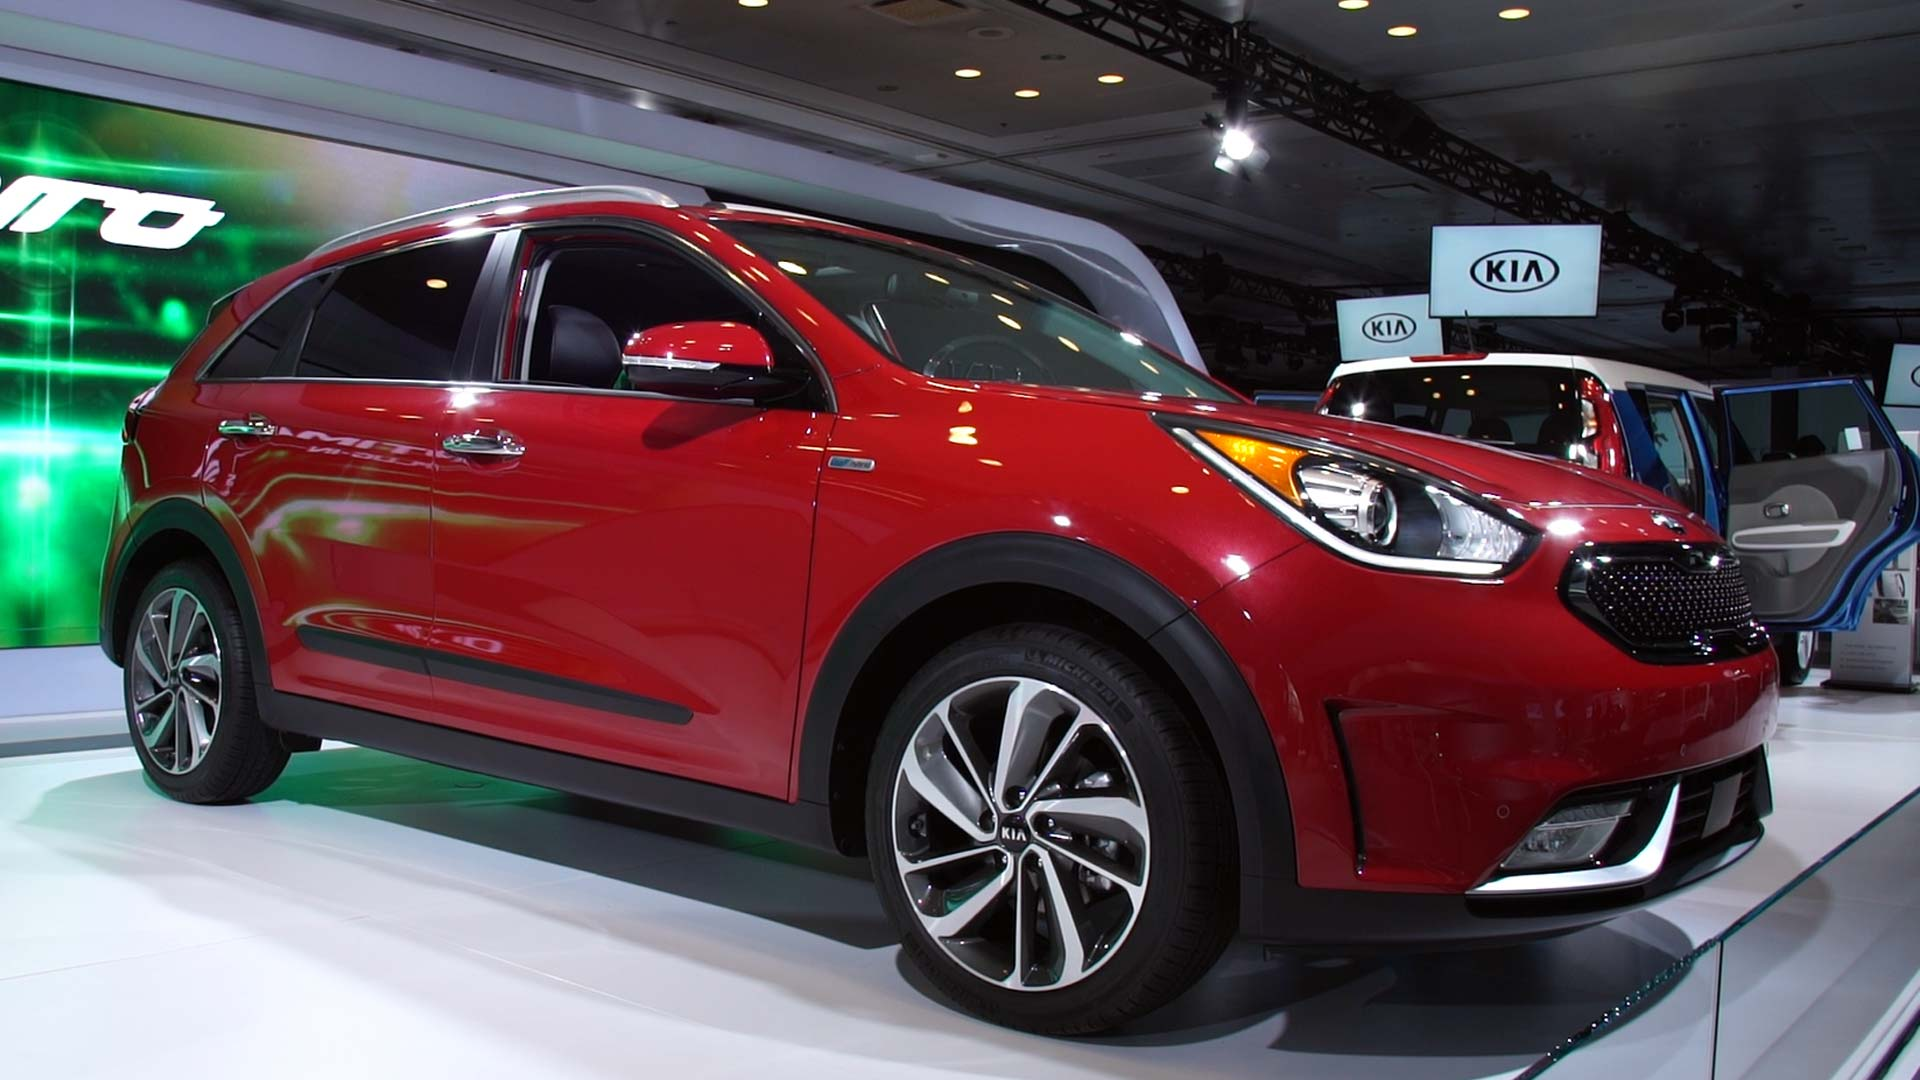 2017 kia niro hybrid aims for toyota prius consumer reports. Black Bedroom Furniture Sets. Home Design Ideas